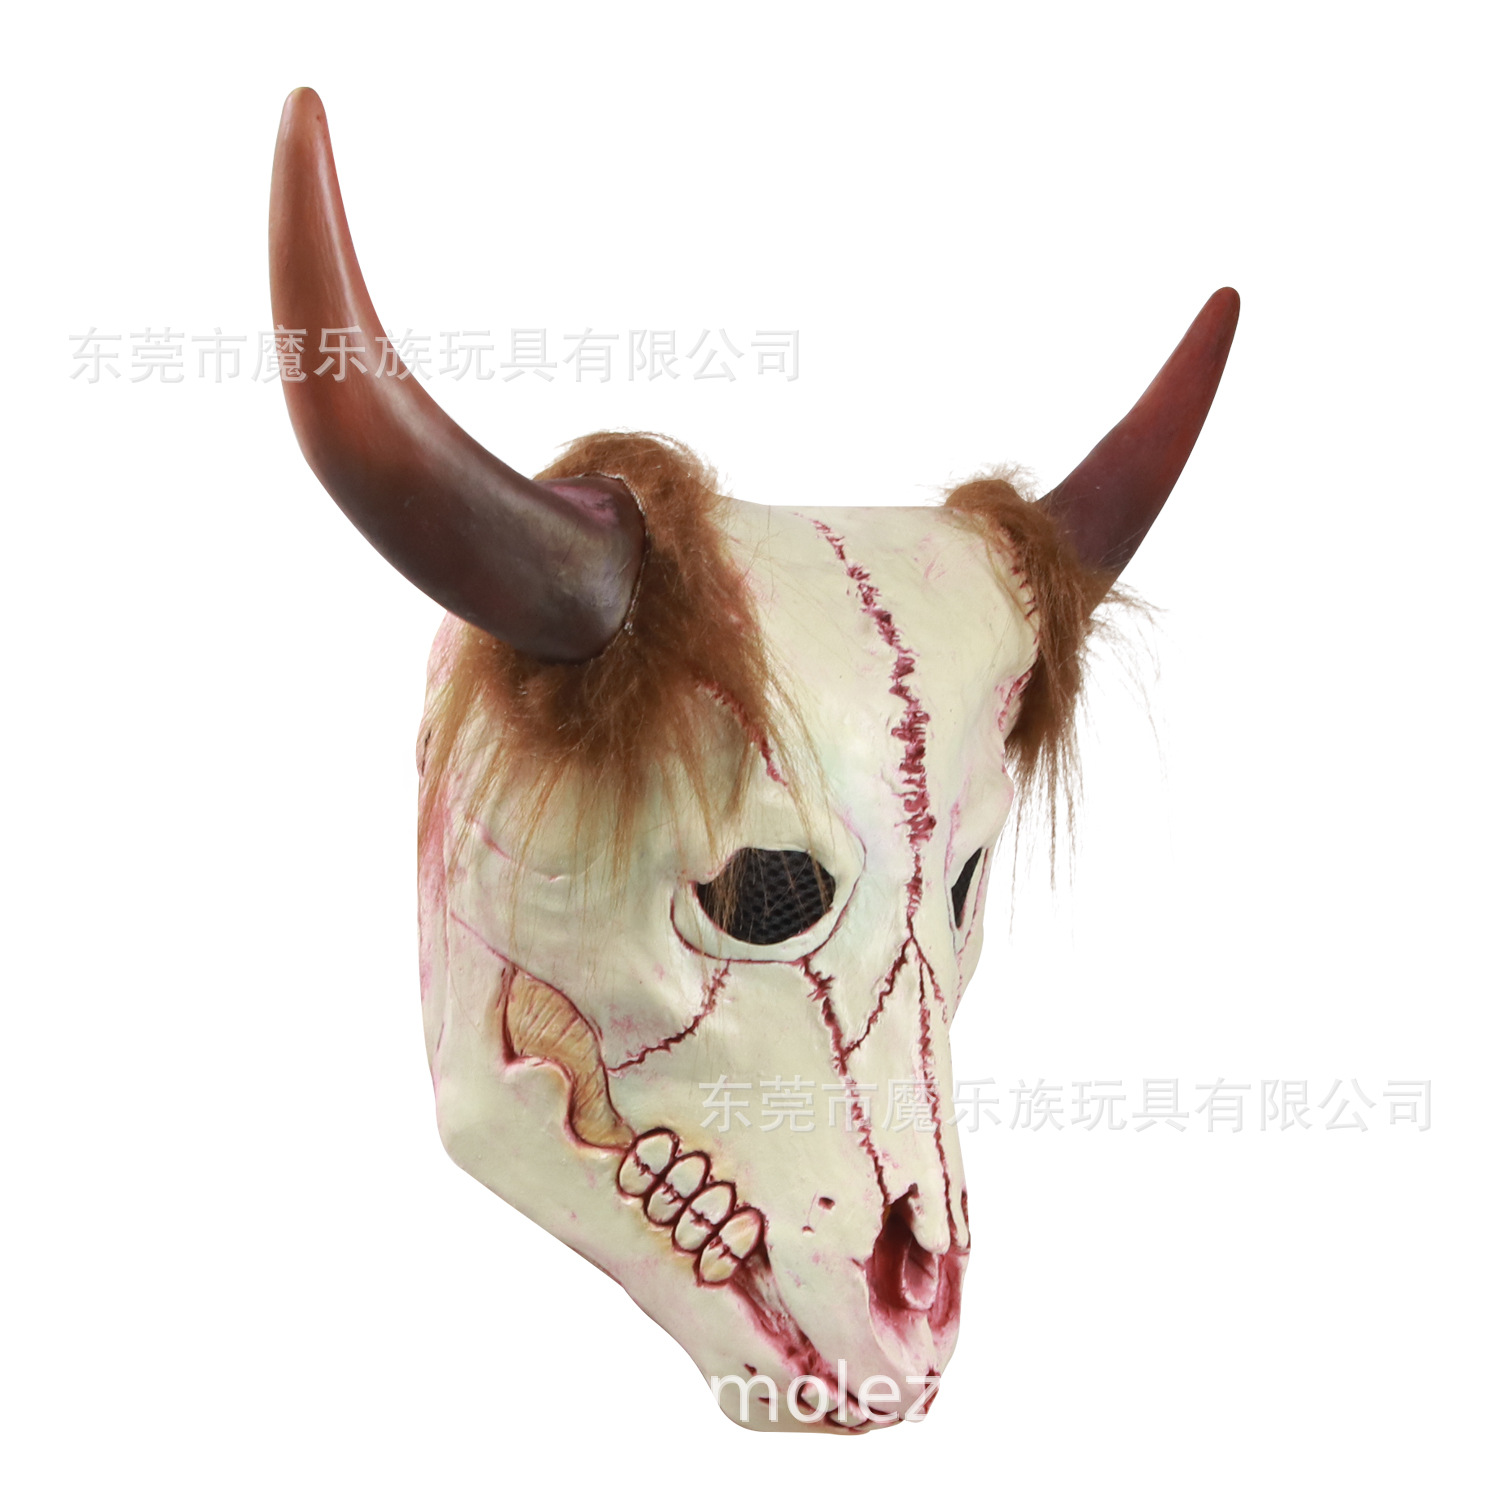 Halloween skull mask zombie ghost mask imitation biochemical crisis skeleton ghost house props.